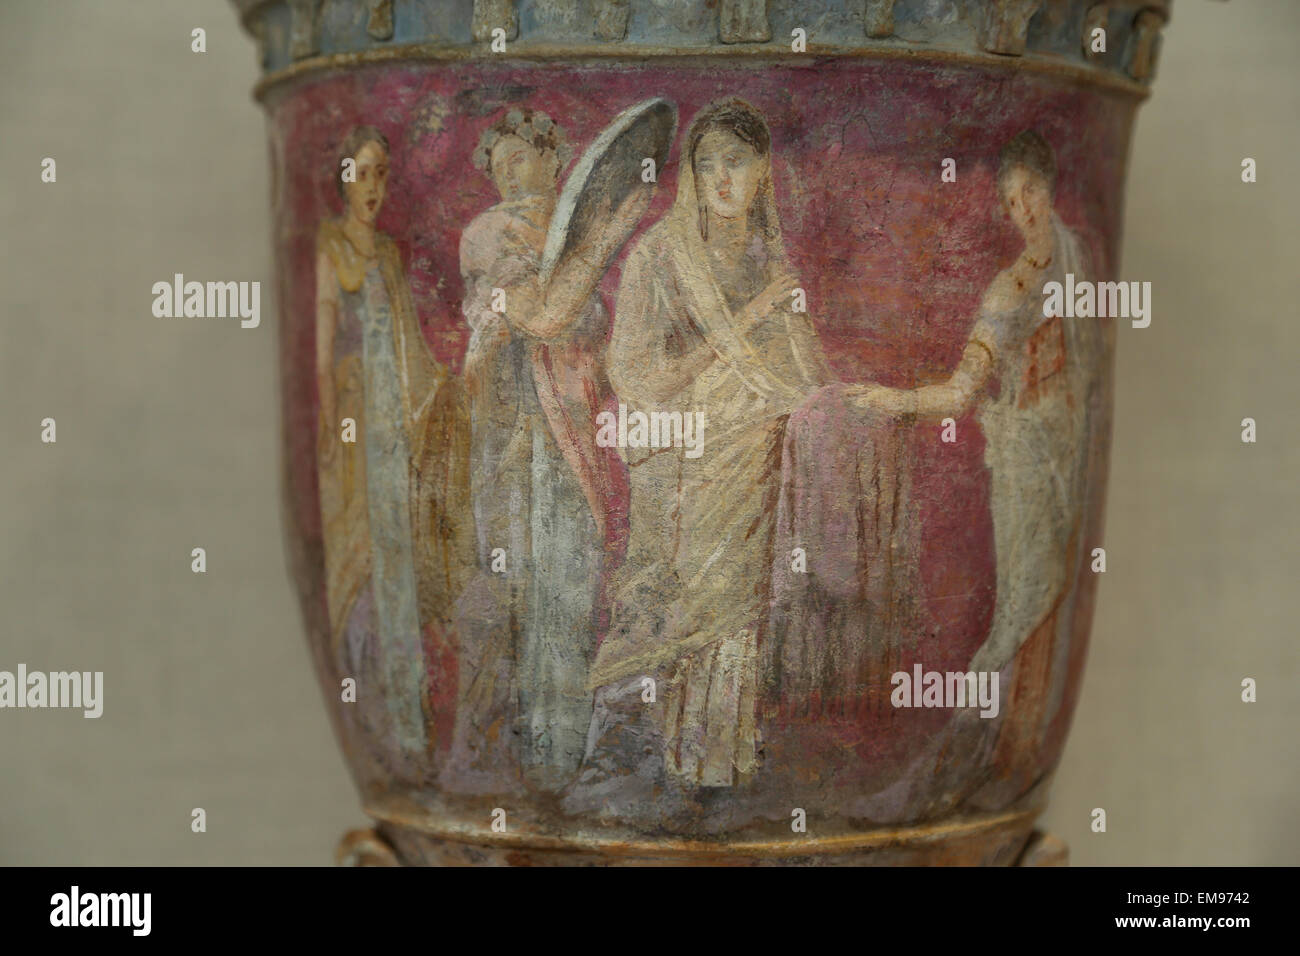 Terracotta vase. Greek, Sicilian. Centuries, 3rd-2nd century BC. Four women. The scene shows a bride surrounded - Stock Image